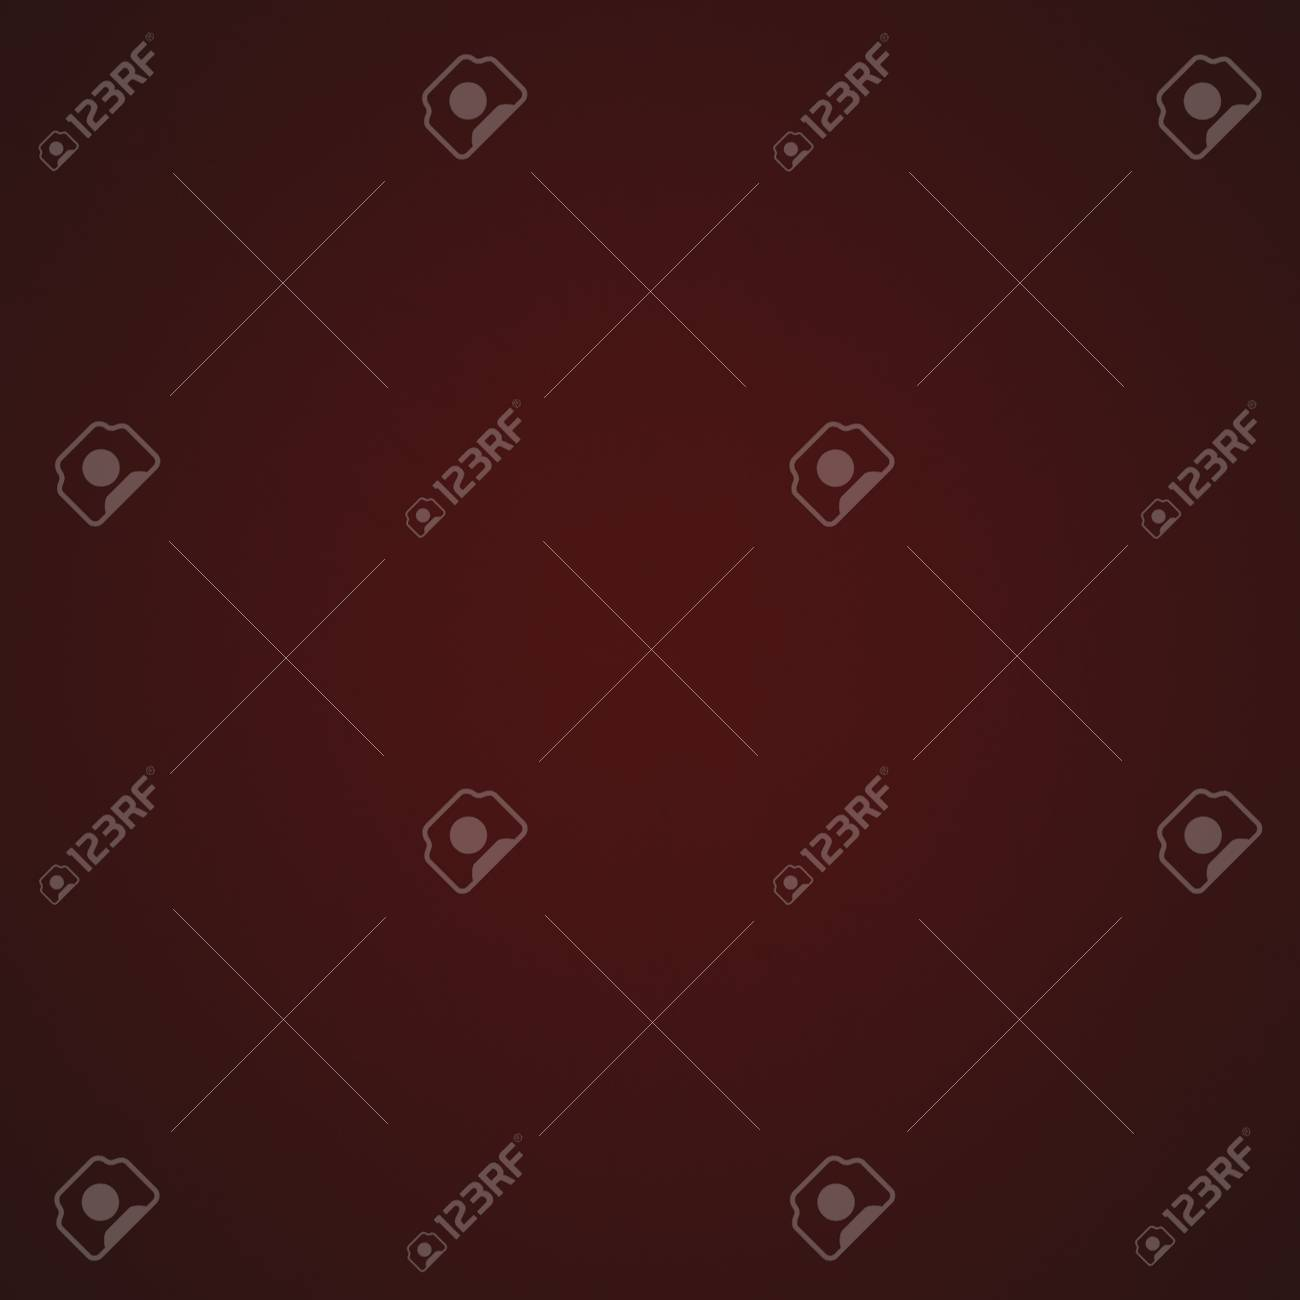 Abstract Dark Red Background Paper Texture Design Template Stock